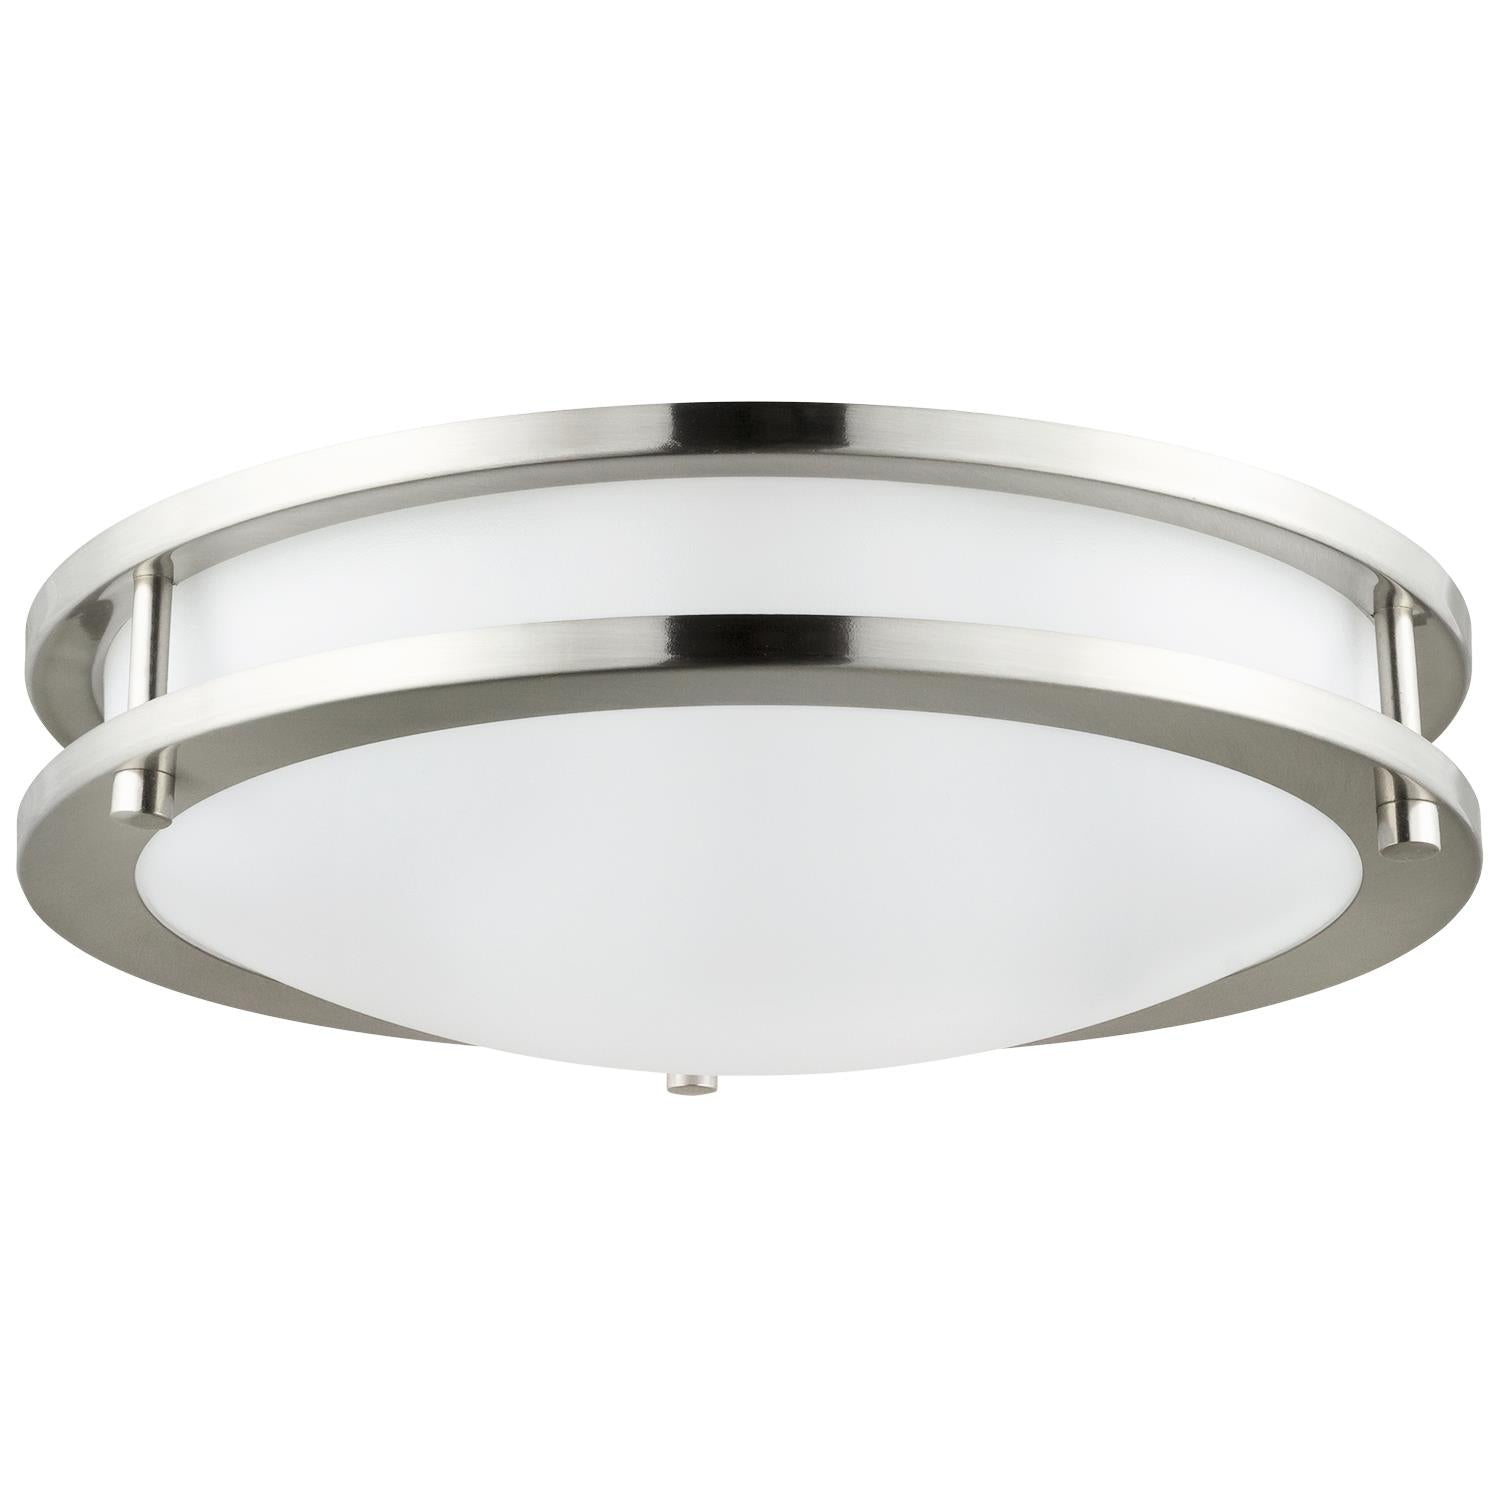 "Sunlite 88357-SU 10"" LED Double Band Ceiling Fixture in Brushed Nickel 4000k"